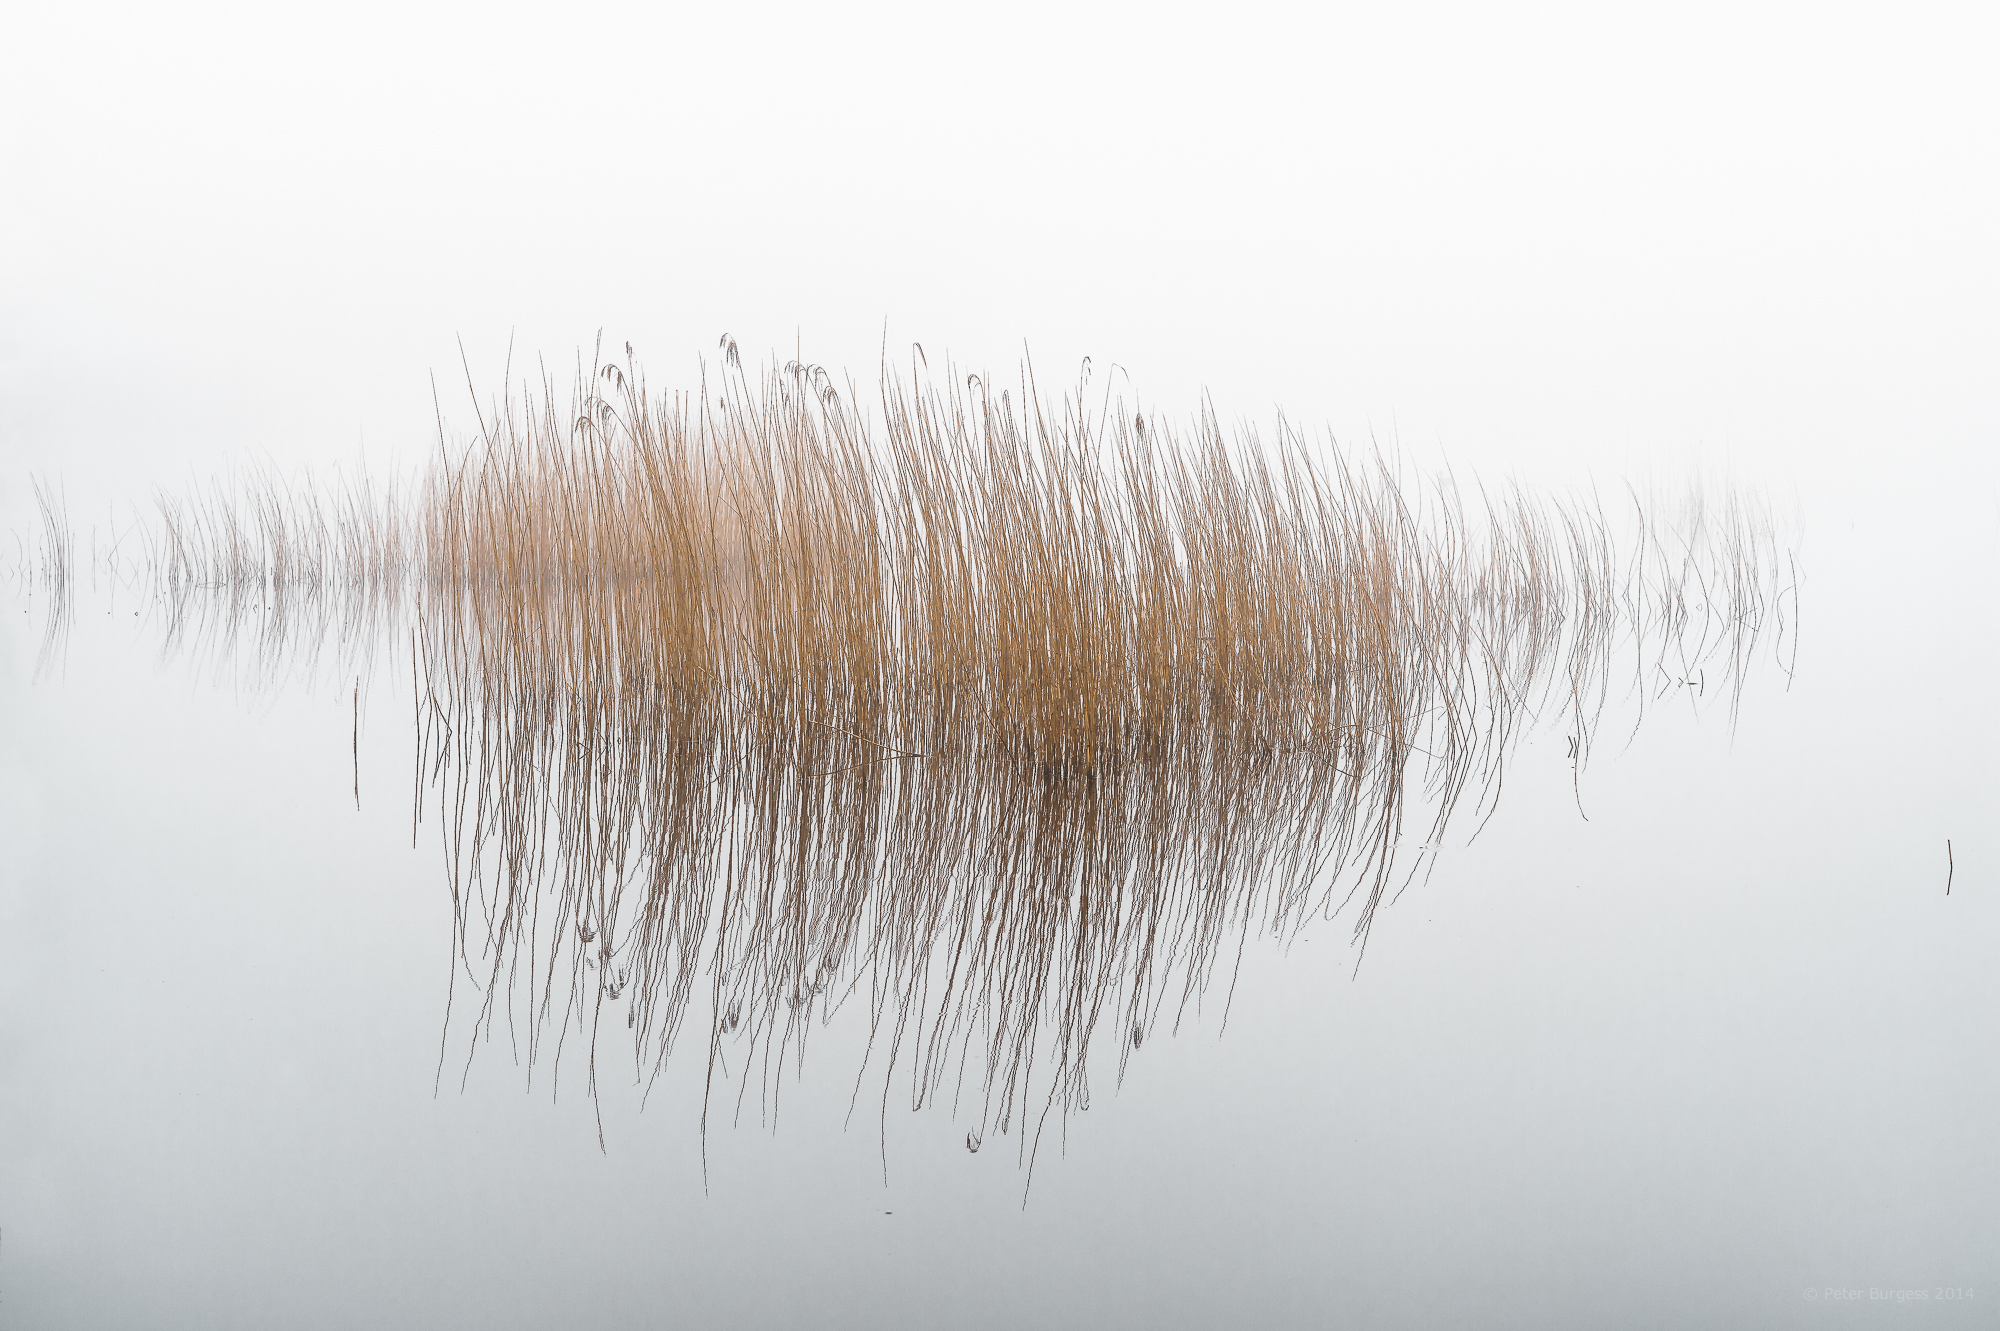 Reeds_in_the_Mist - Reeds PNG